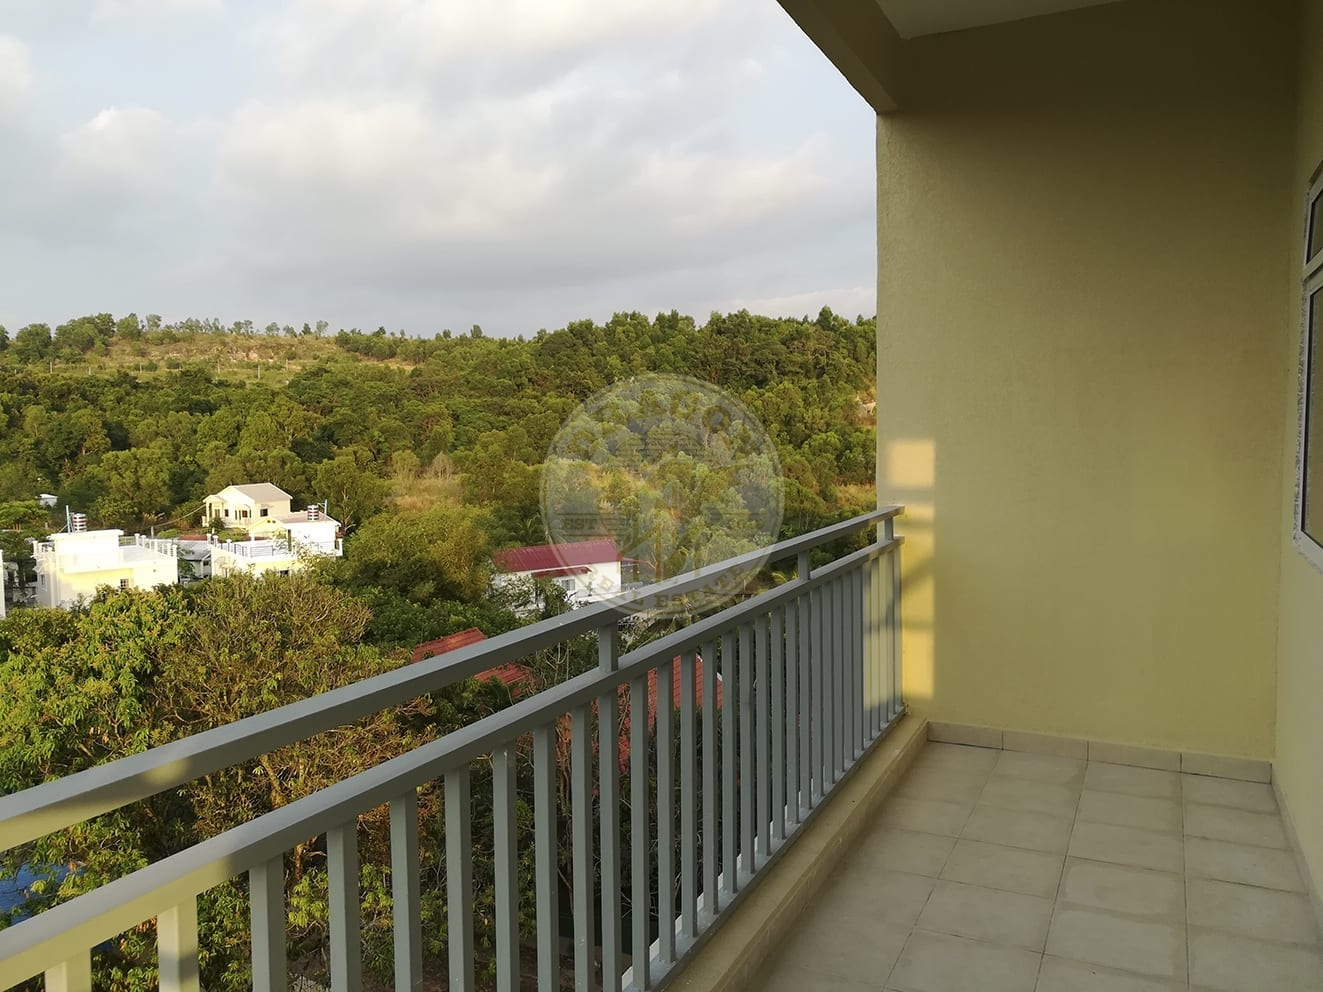 Apartment w/ One balcony for Rent. Real Estate Sihanoukville